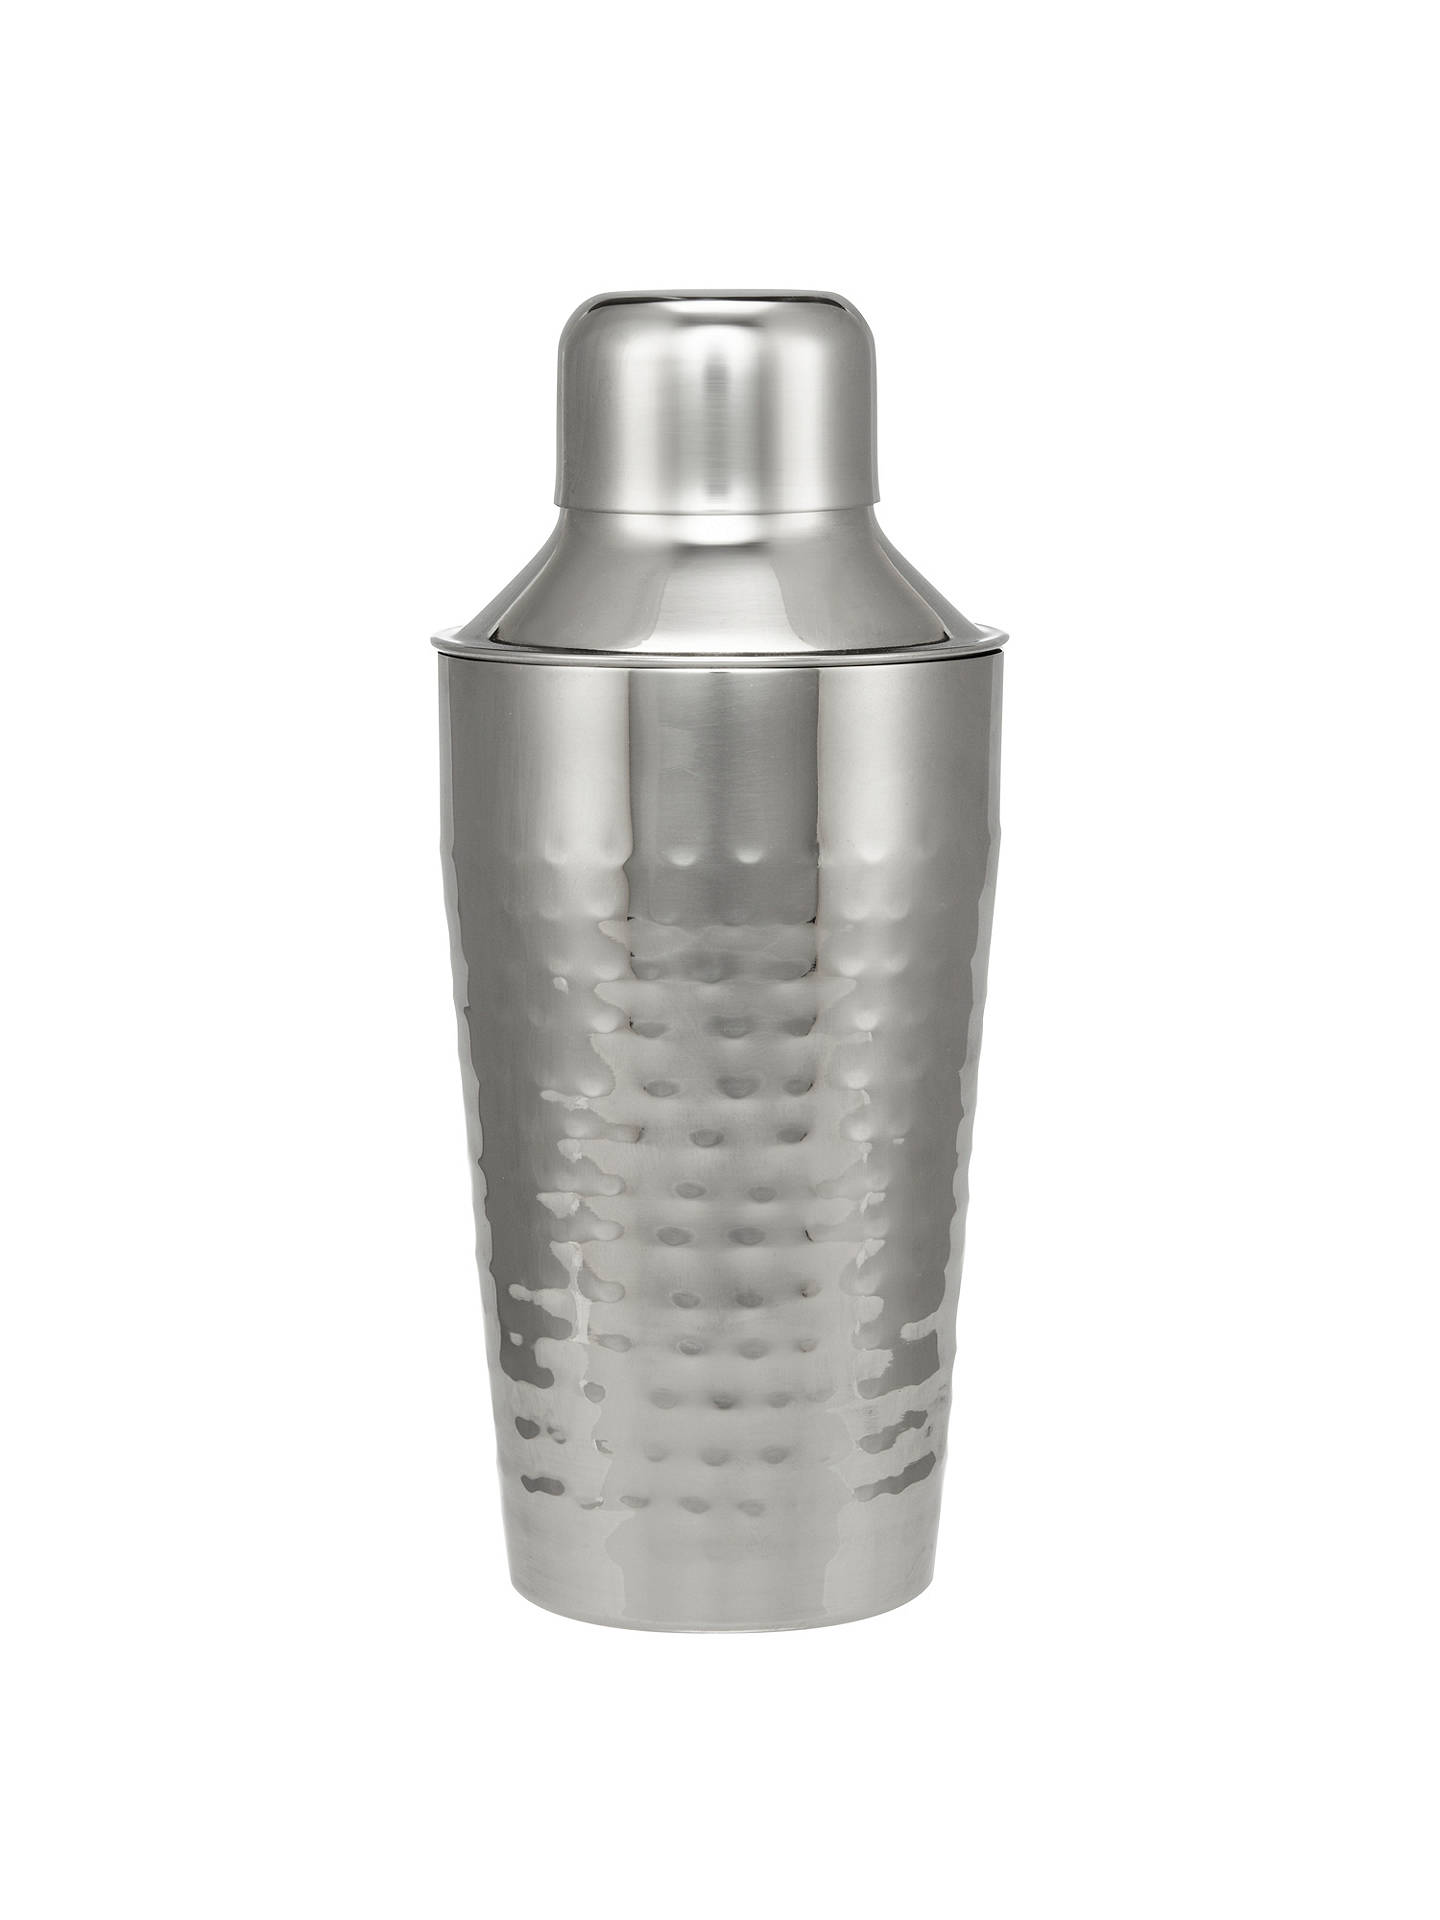 Buy John Lewis & Partners Hammered Stainless Steel Cocktail Shaker, 300ml Online at johnlewis.com